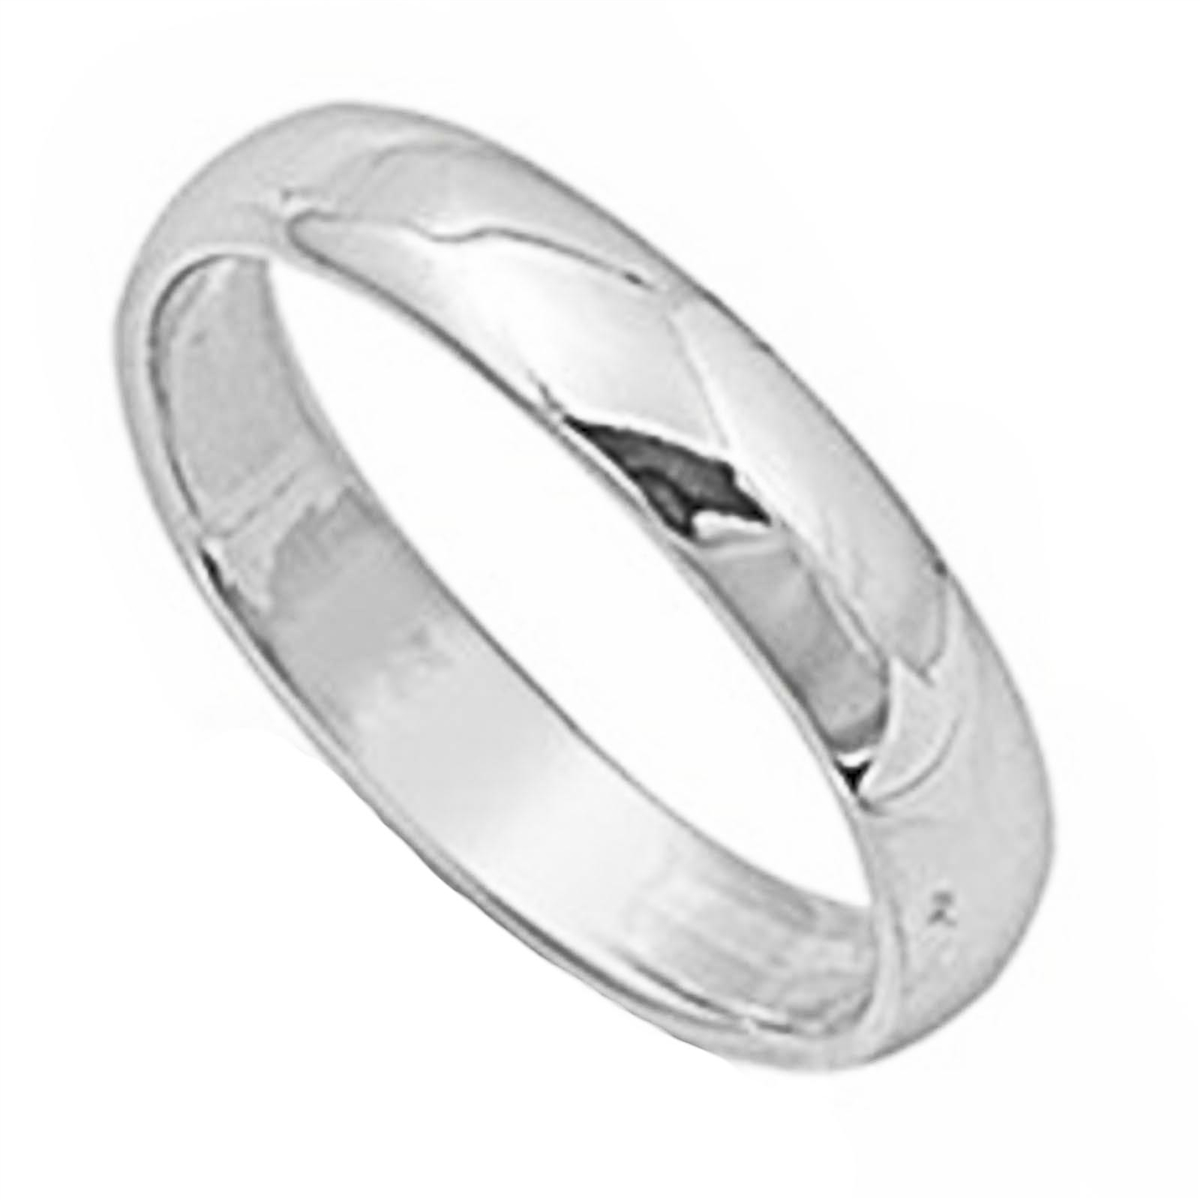 Round Plain Solid Wedding Band 5 MM .925 Sterling Silver Ring Sizes 4-14